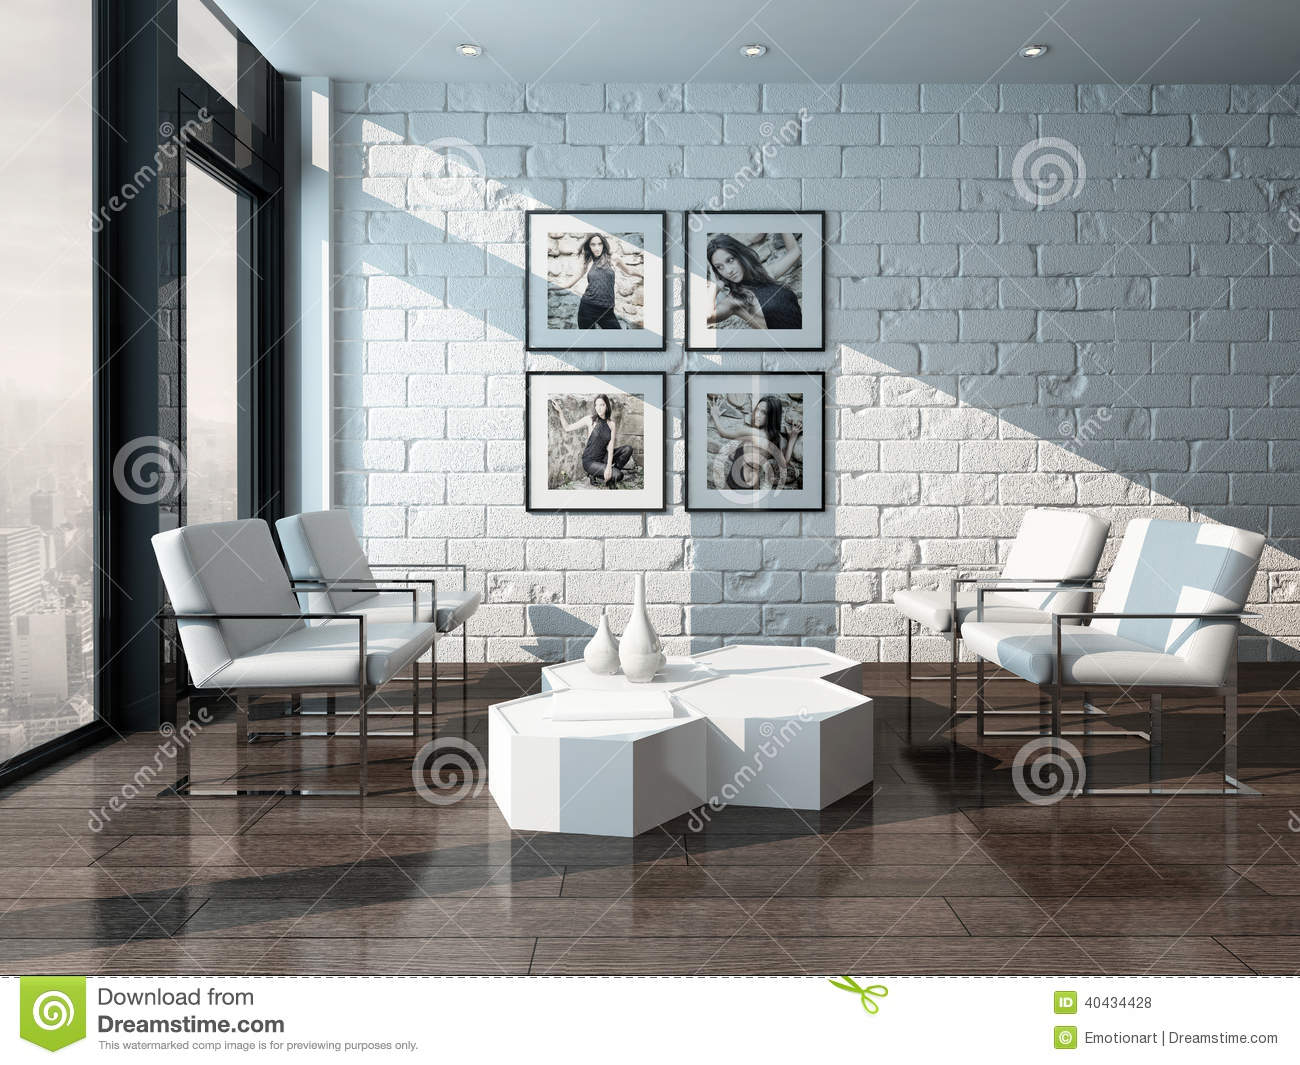 the brick living room furniture. Minimalist Living Room Interior With Brick Wall. Loft, Chair. The Furniture